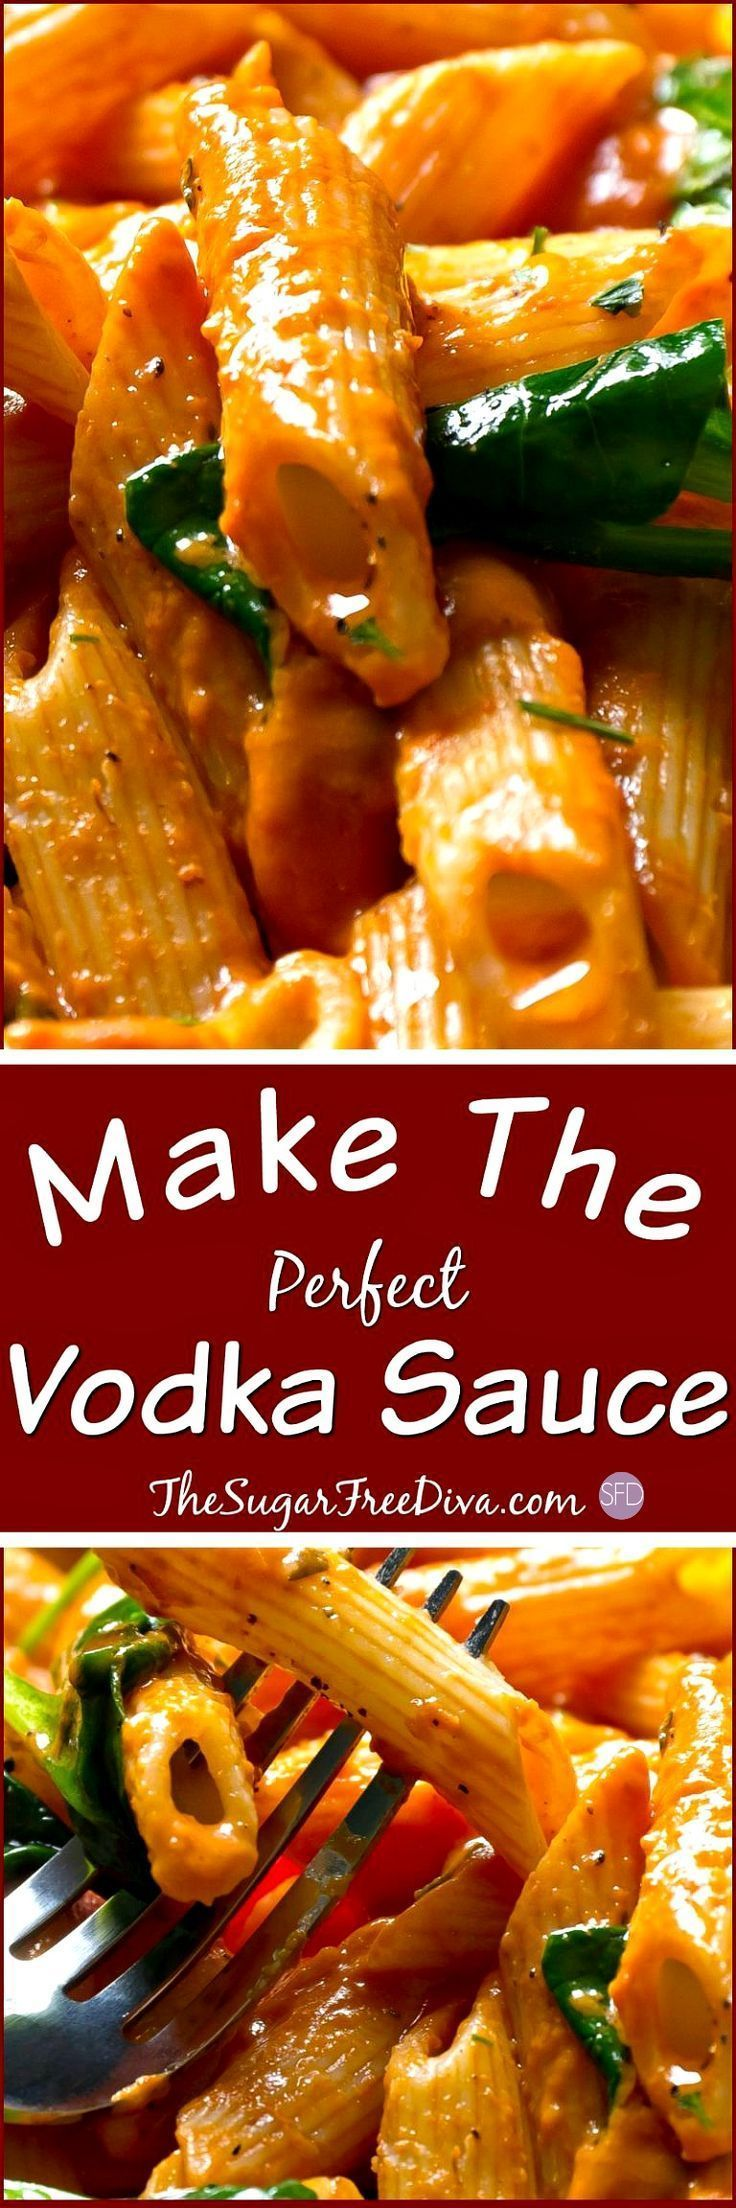 This is the best pasta sauce ever! It had VODKA in it!